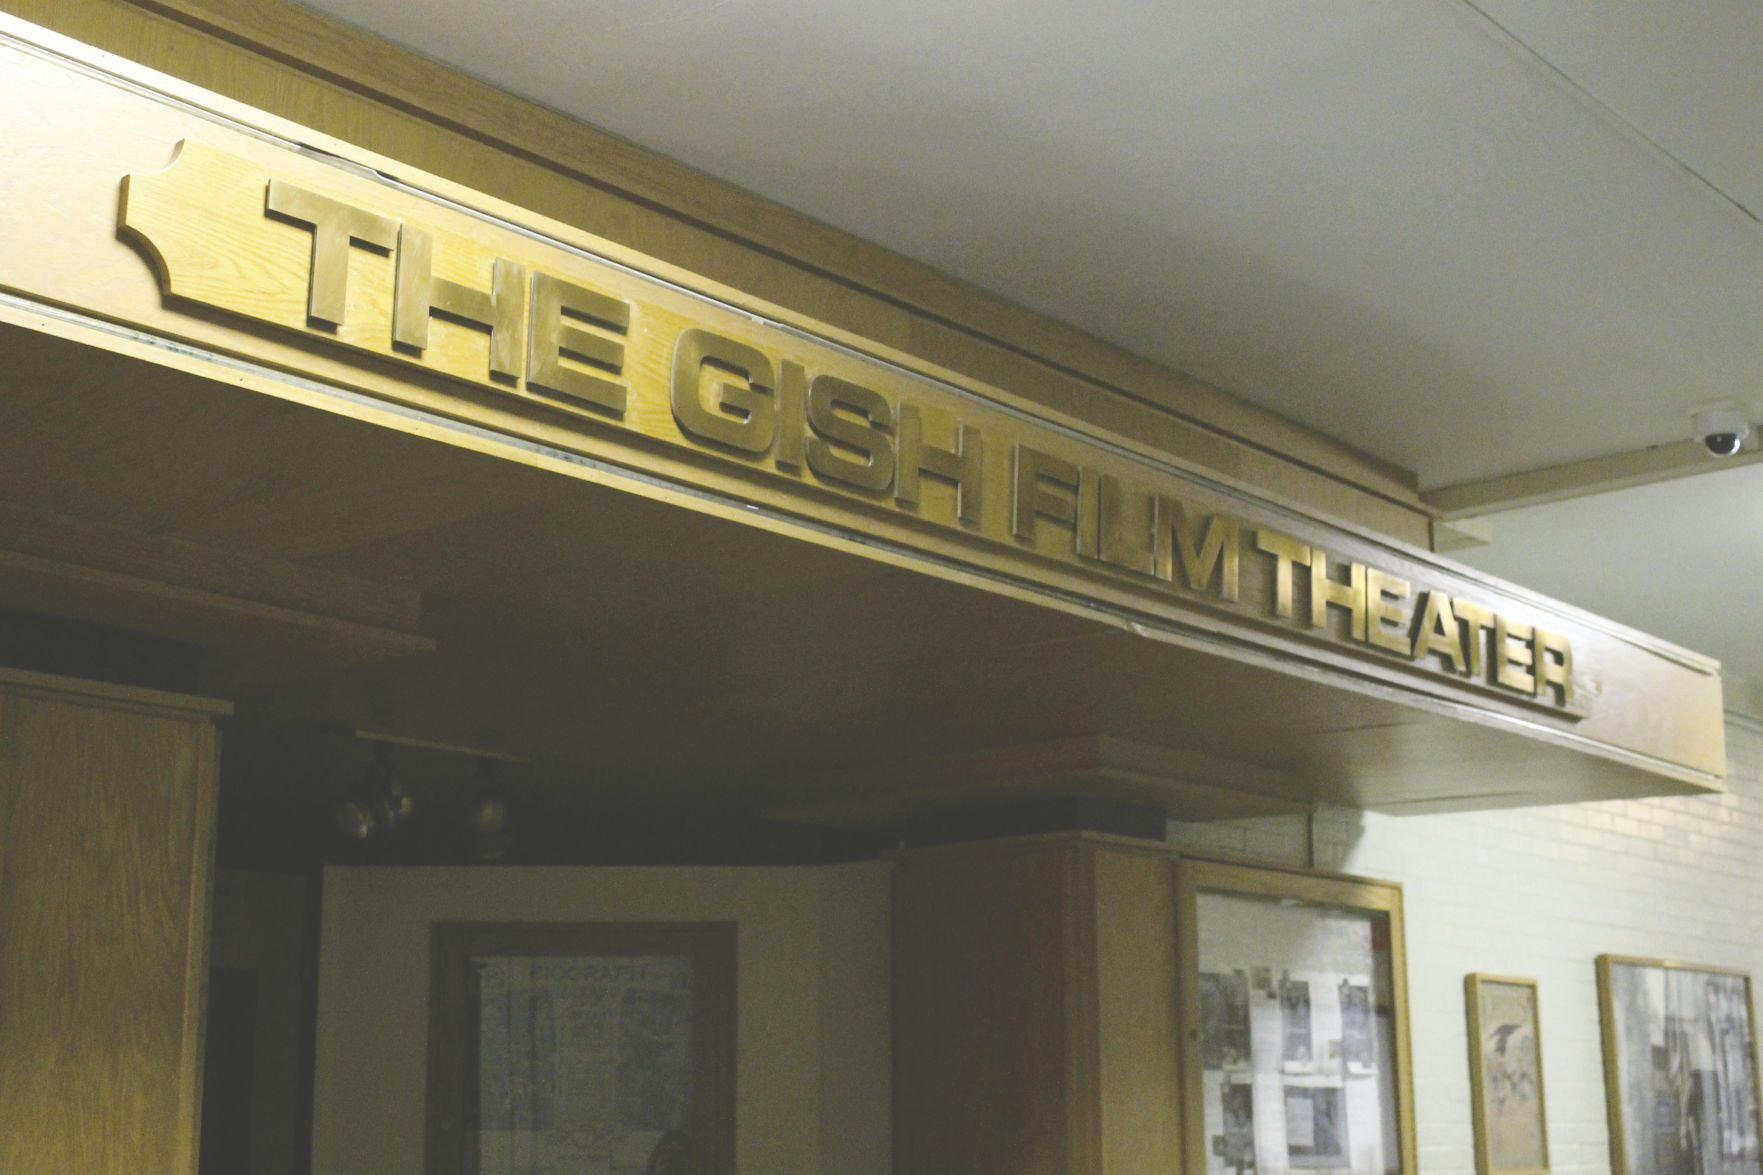 University officials ensure Gish Theater will remain